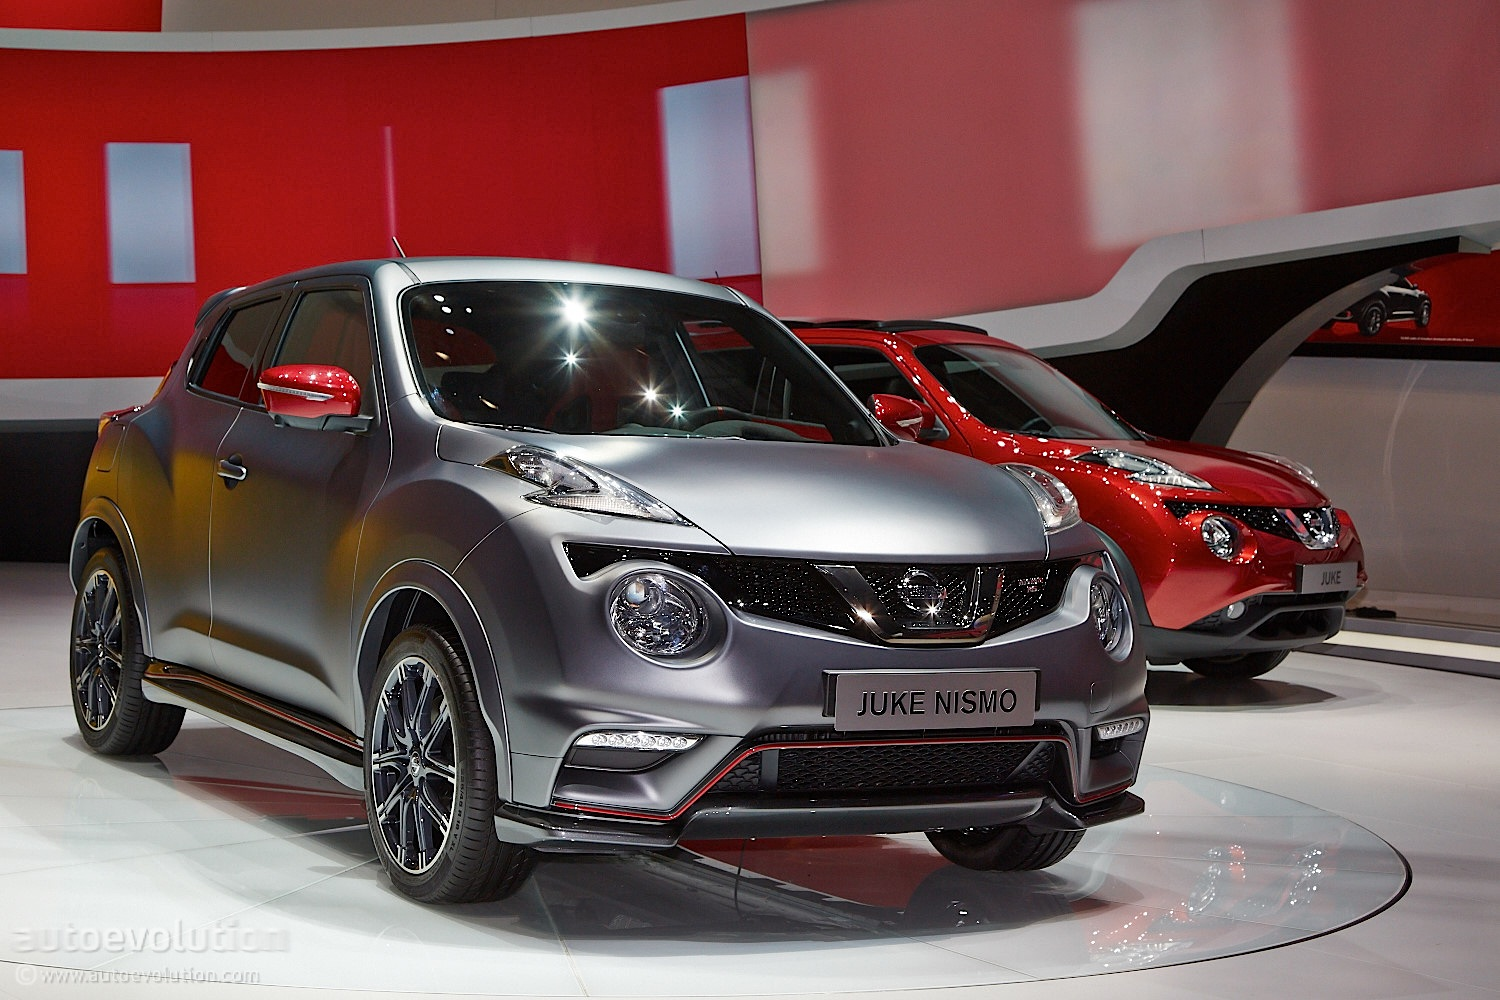 nissan juke nismo rs facelift debuts in geneva with 218 hp. Black Bedroom Furniture Sets. Home Design Ideas